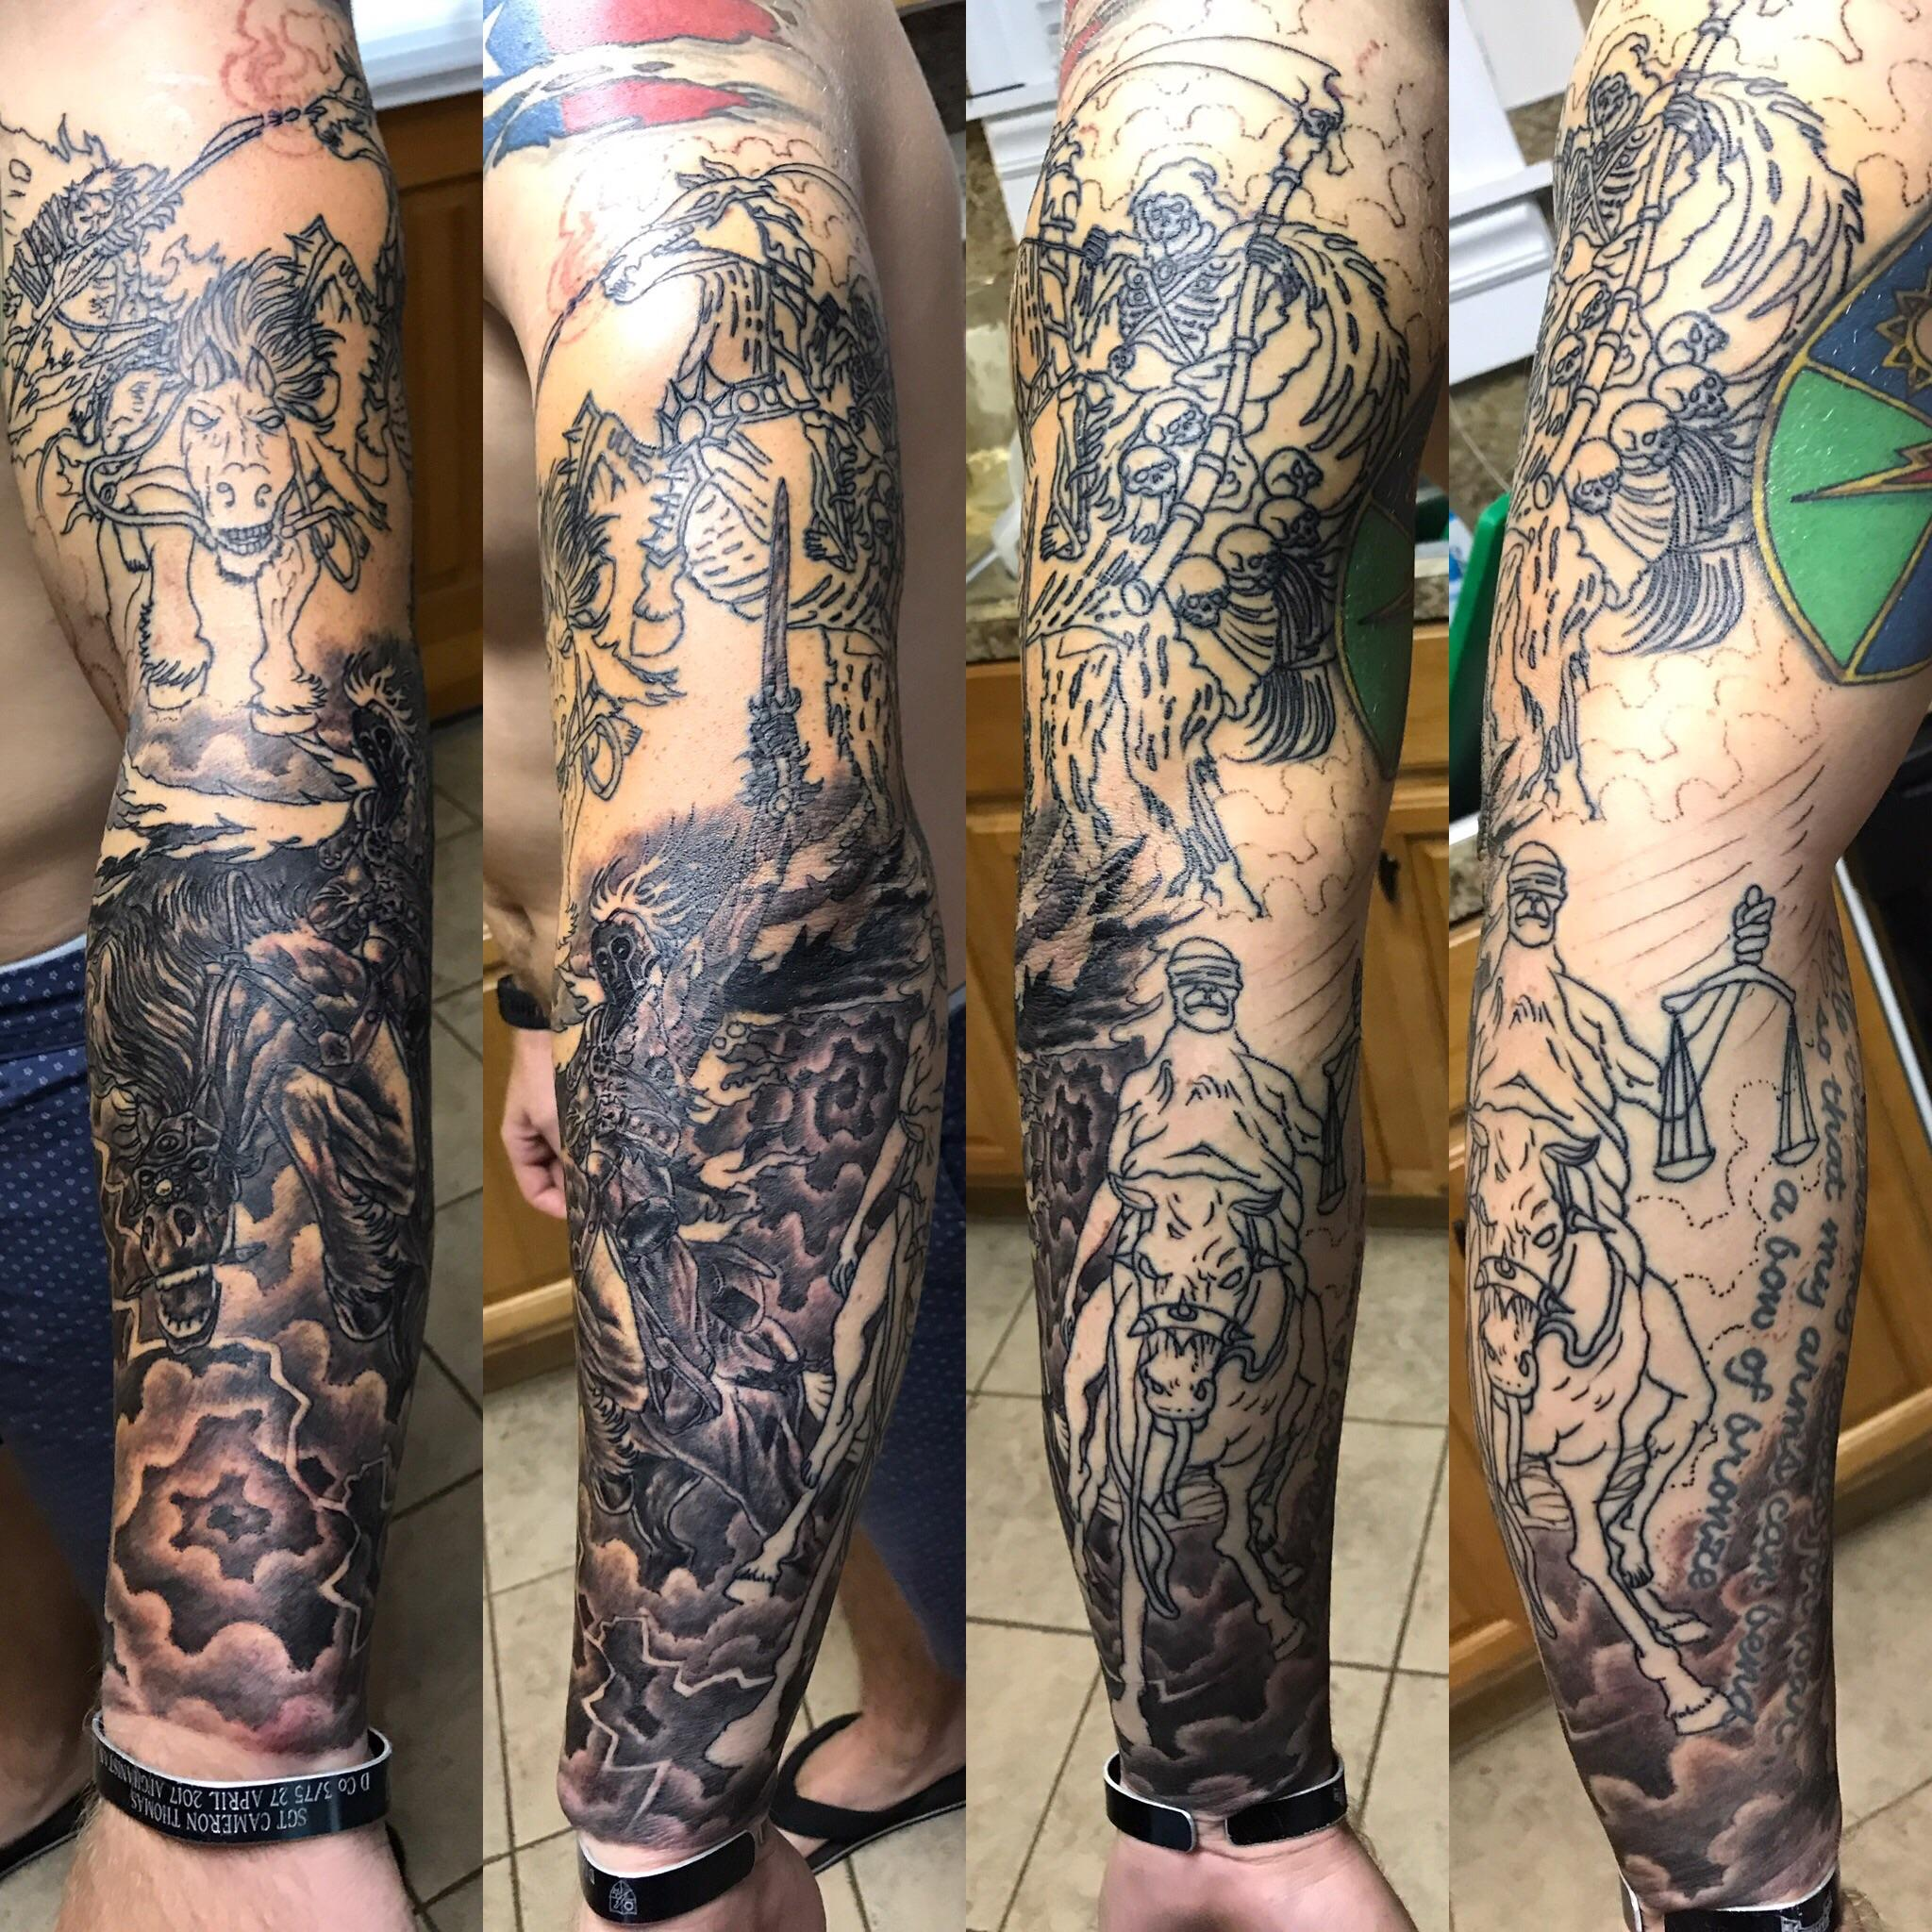 4 Horsemen Of The Apocalypse Sleeve Session 2 3 Done By Ideas And Designs